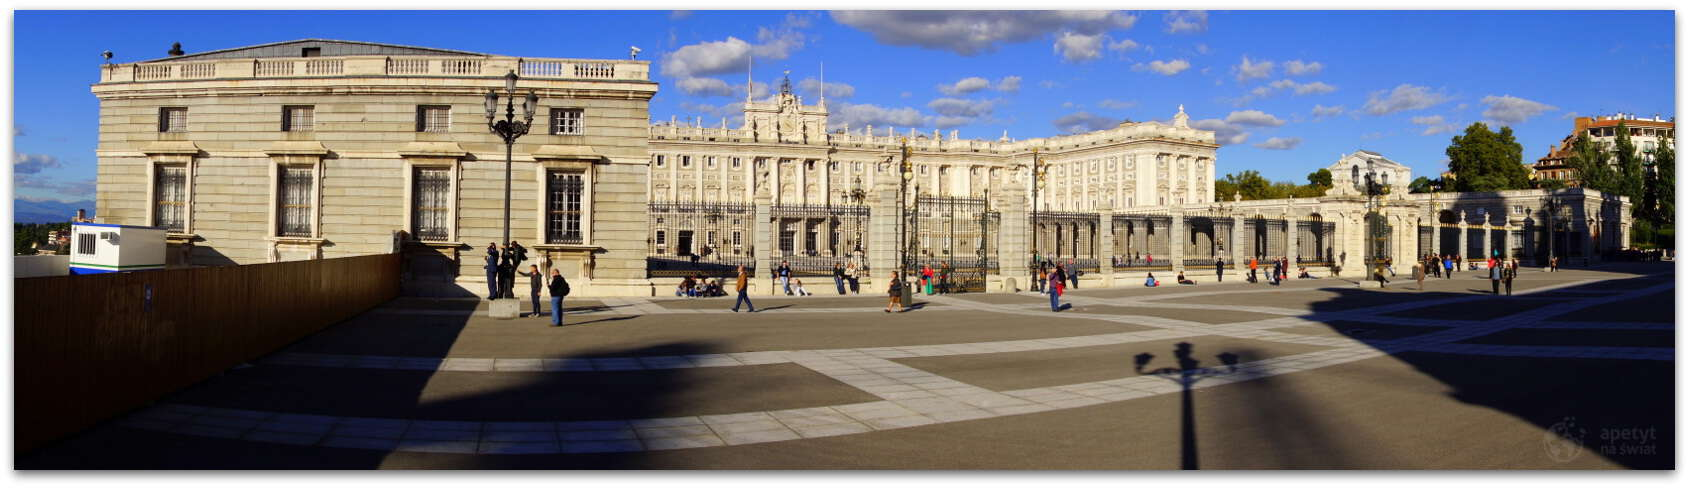 Madryt, Palacio Real de Madrid